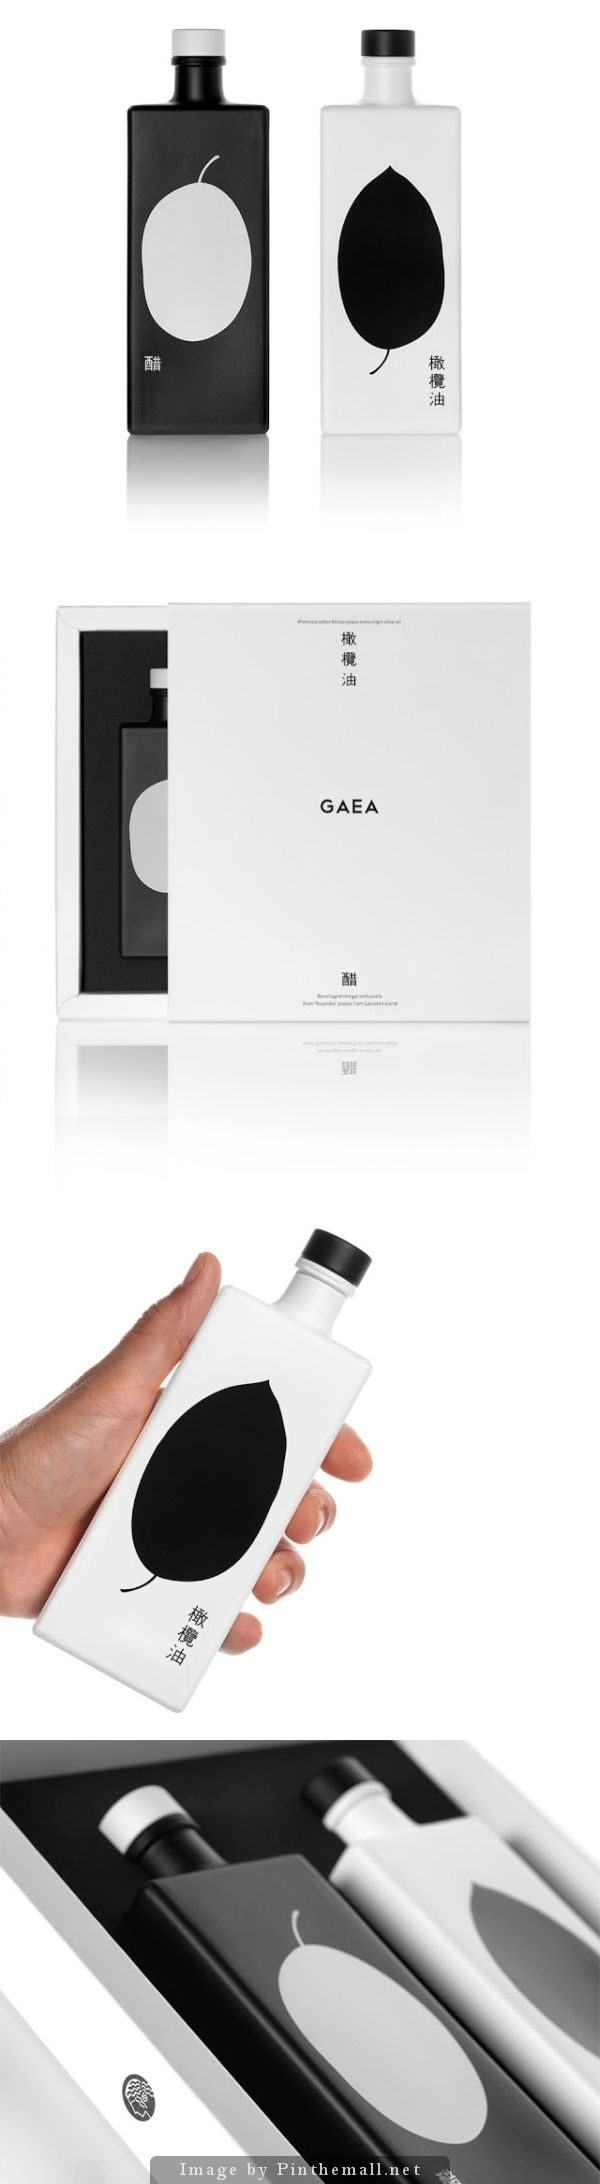 手机壳定制free shipping to australia shoes GAEA Oil and Vinegar Creative Agency mousegraphics  http  www packagingoftheworld com     gaea oil and vinegar html